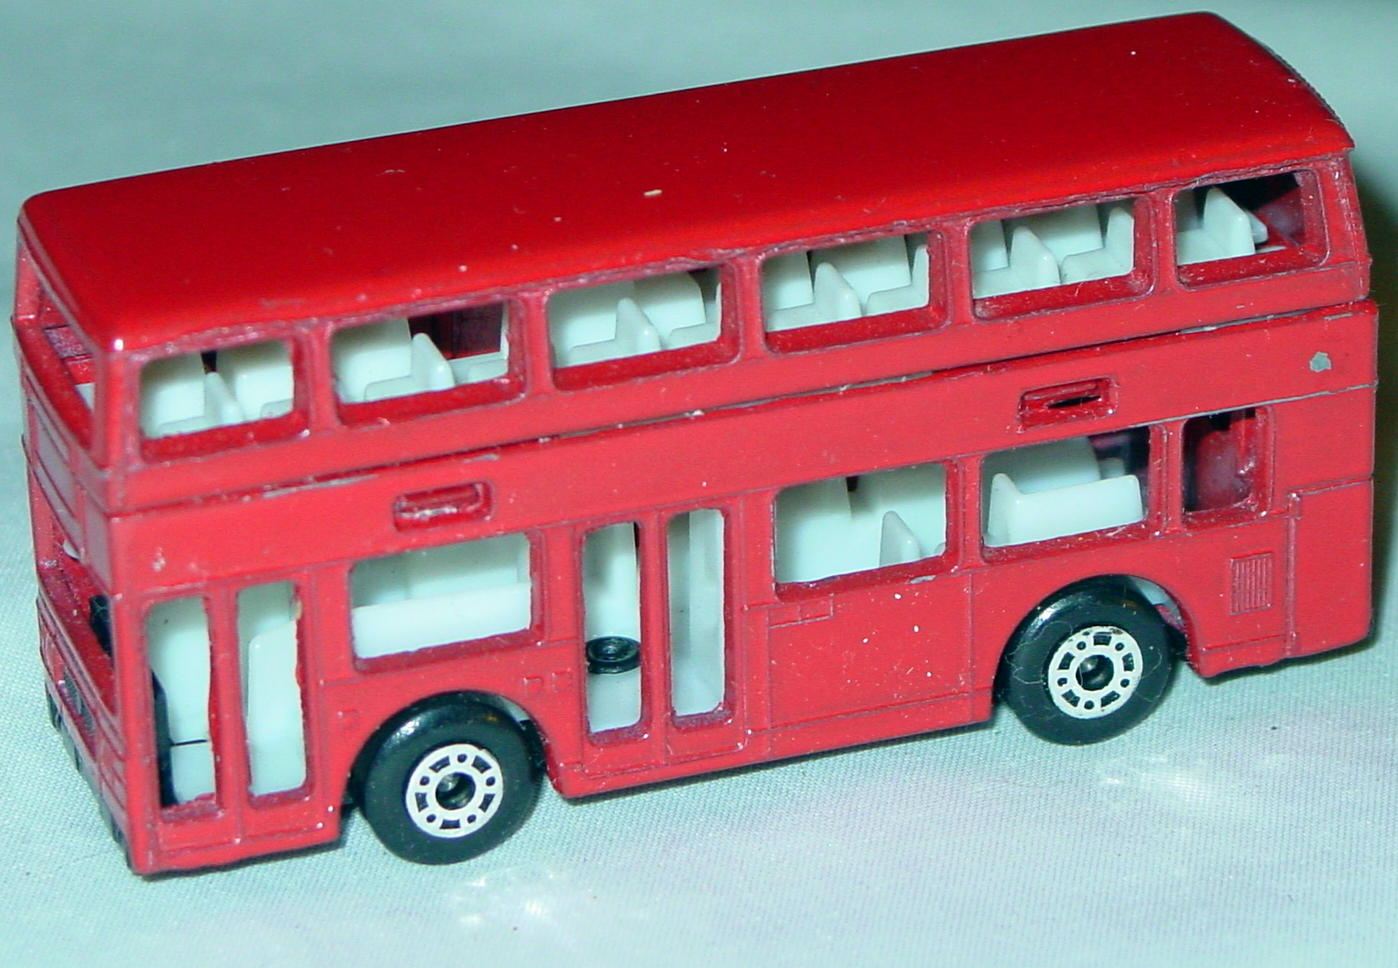 ASAP-CCI 17 C 69 - Titan Bus Red no tampo ASAP blank